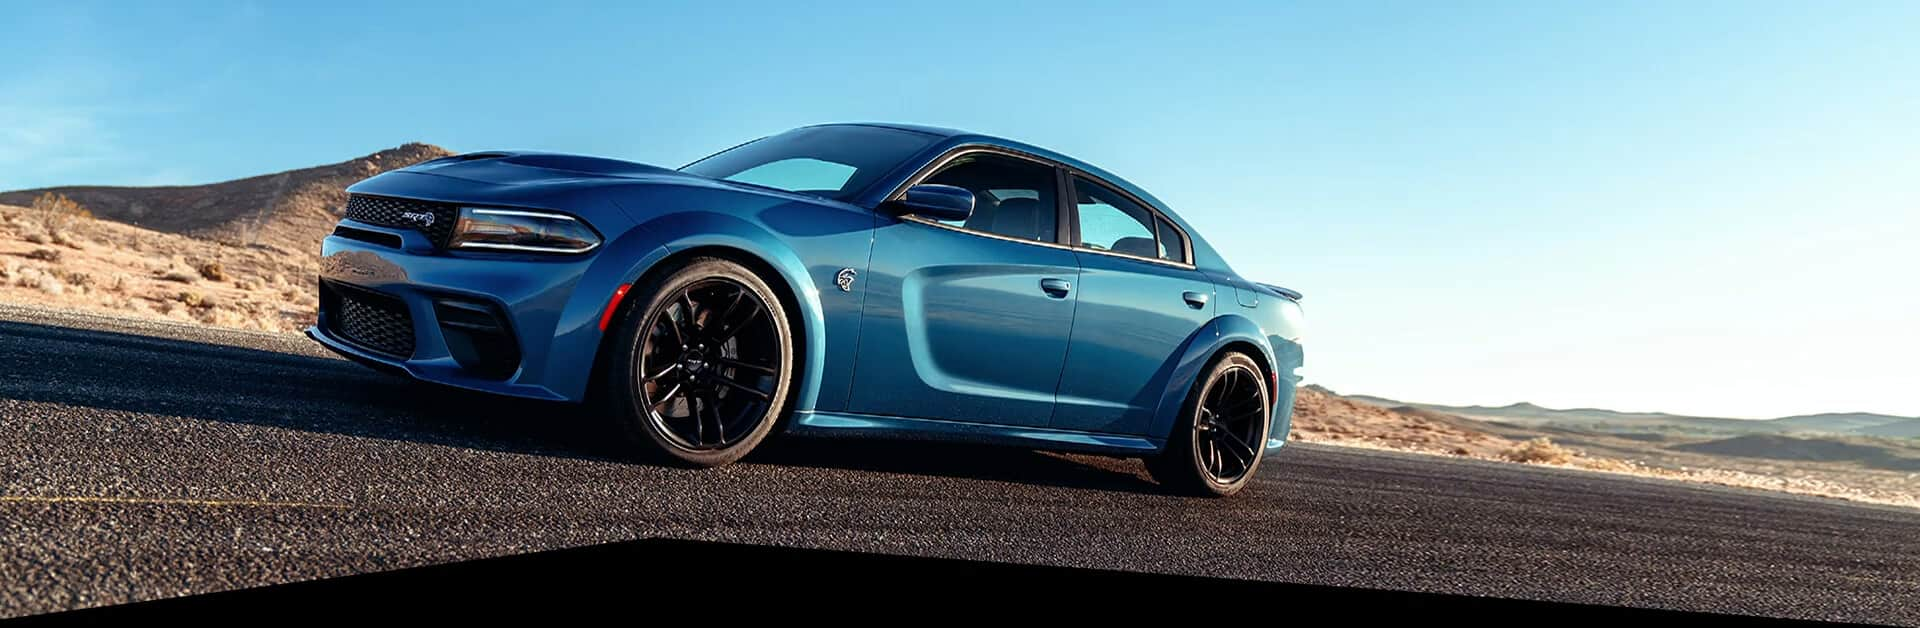 2020 Dodge Charger Srt Hellcat Widebody Configurations